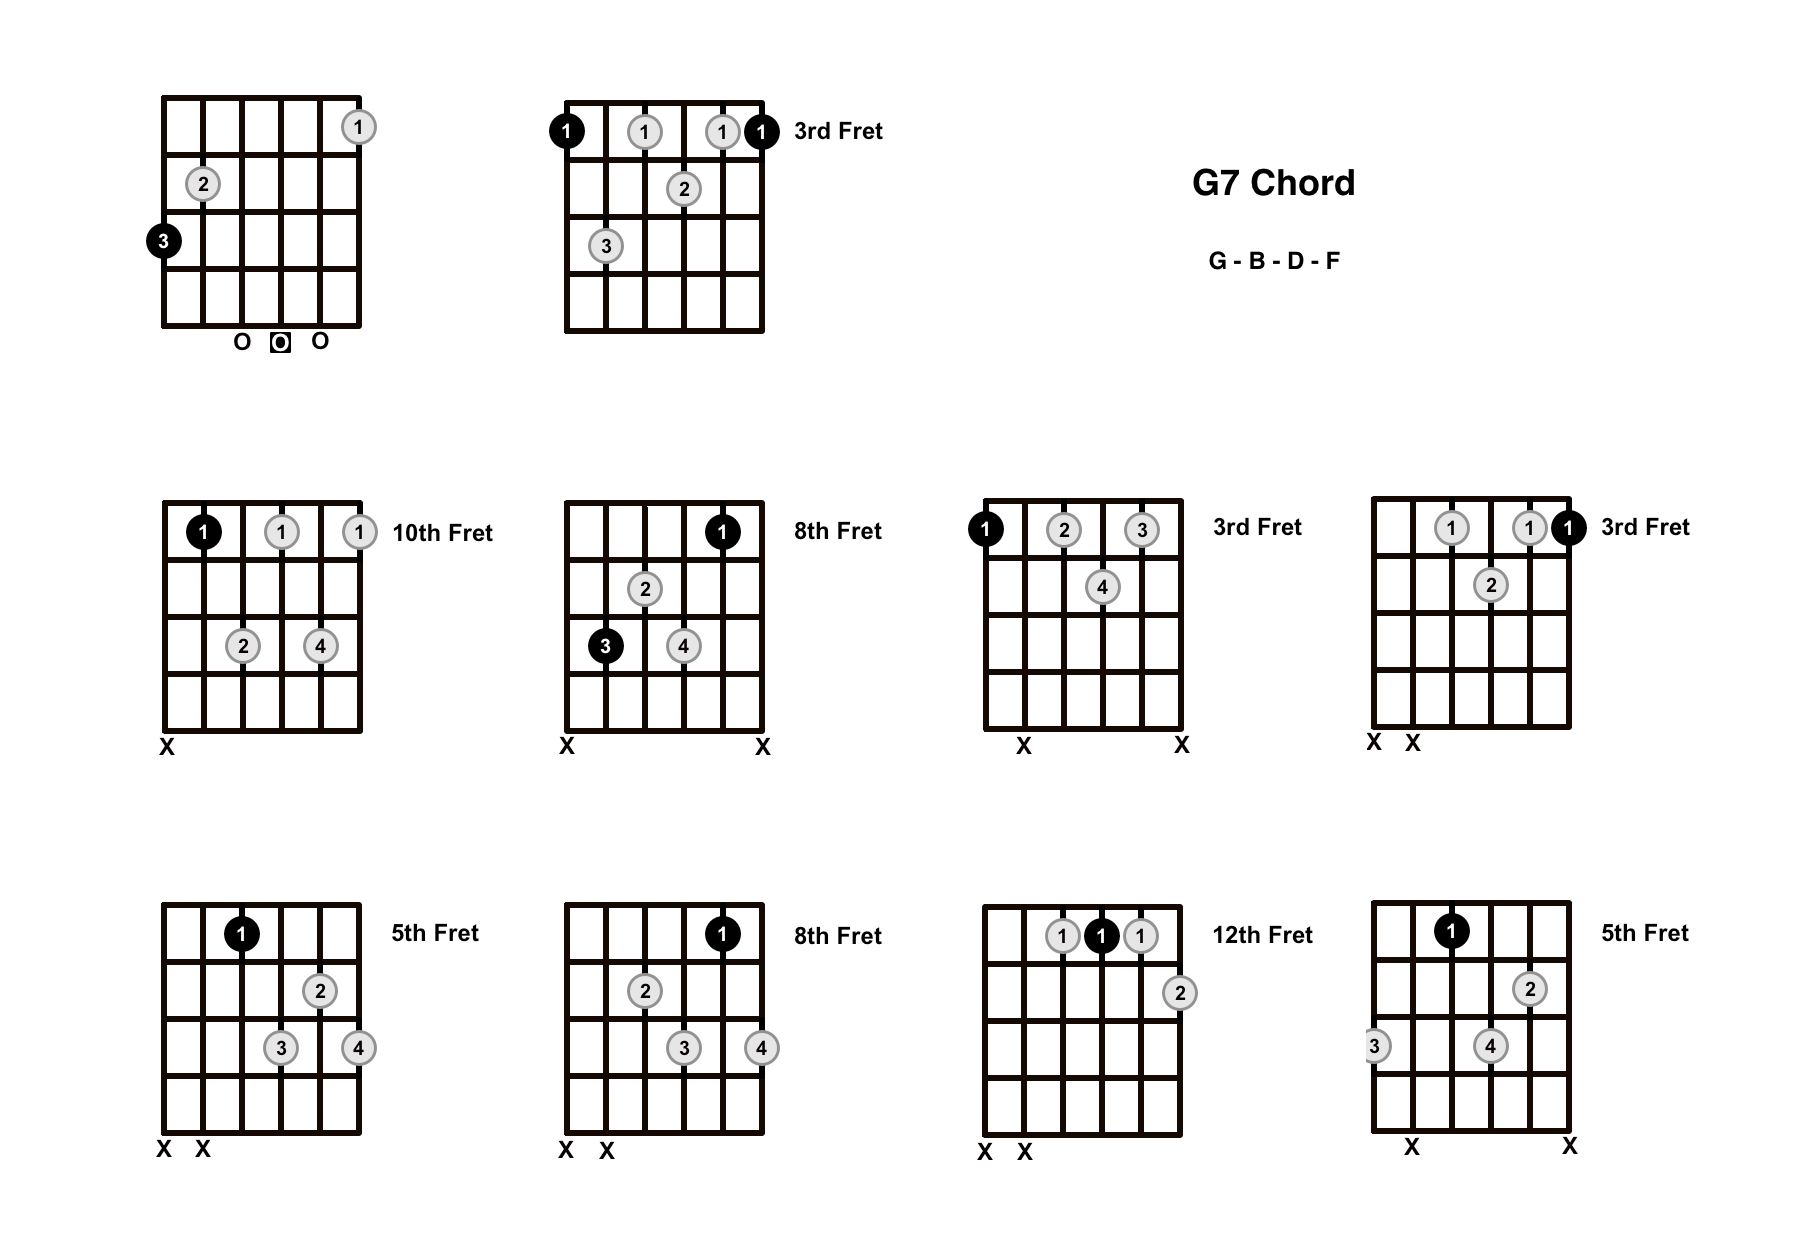 G7 Chord On The Guitar (G Dominant 7) – Diagrams, Finger Positions and Theory